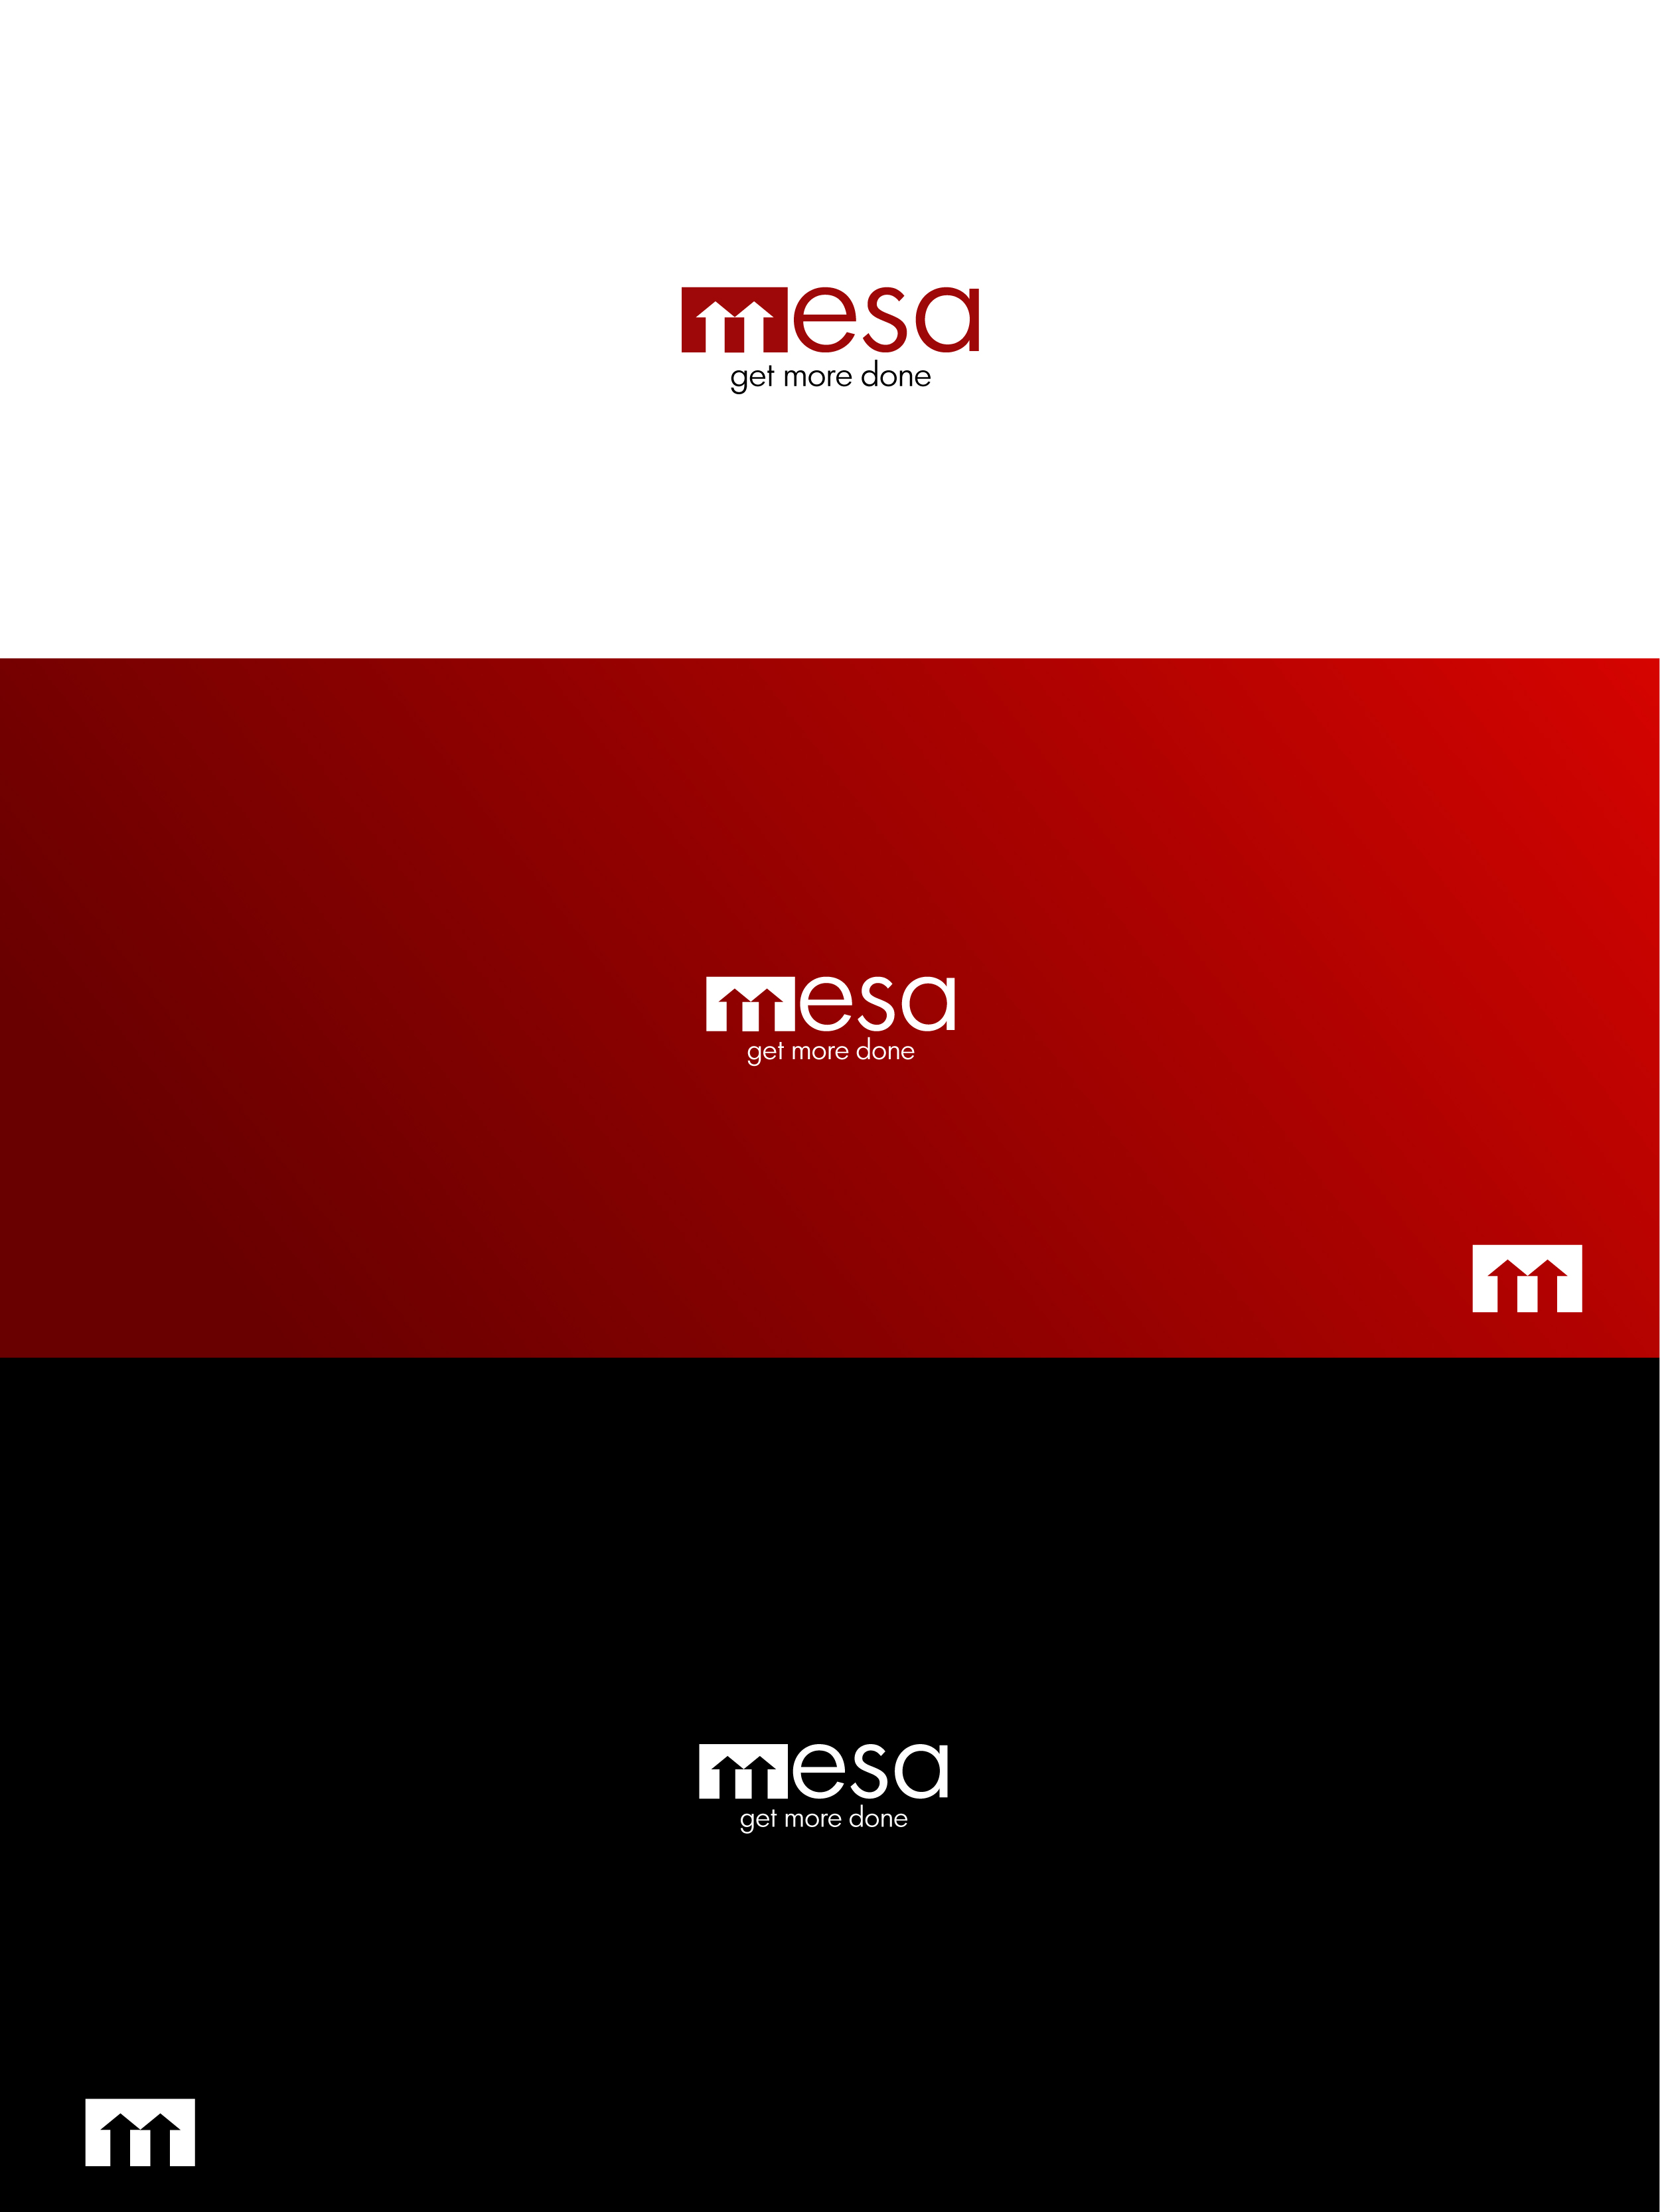 Logo Design by Osi Indra - Entry No. 43 in the Logo Design Contest Logo Design for Mesa.